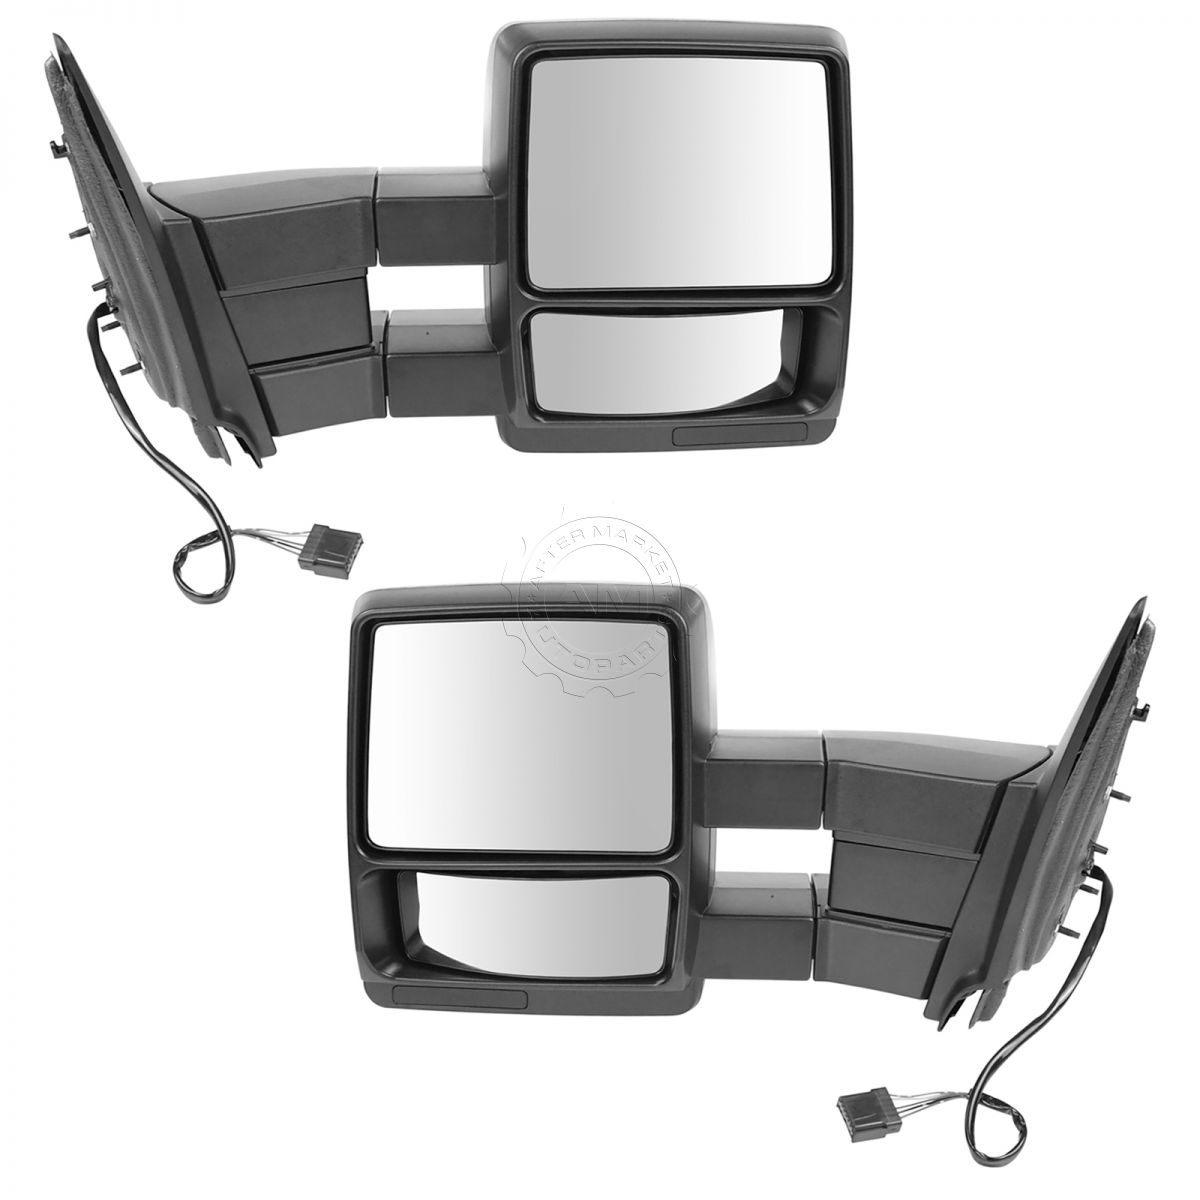 Tow Mirror Power Heated Textured Black Pair Set For 98 02 Ford 2003 Chevy Wiring Diagram Expedition New